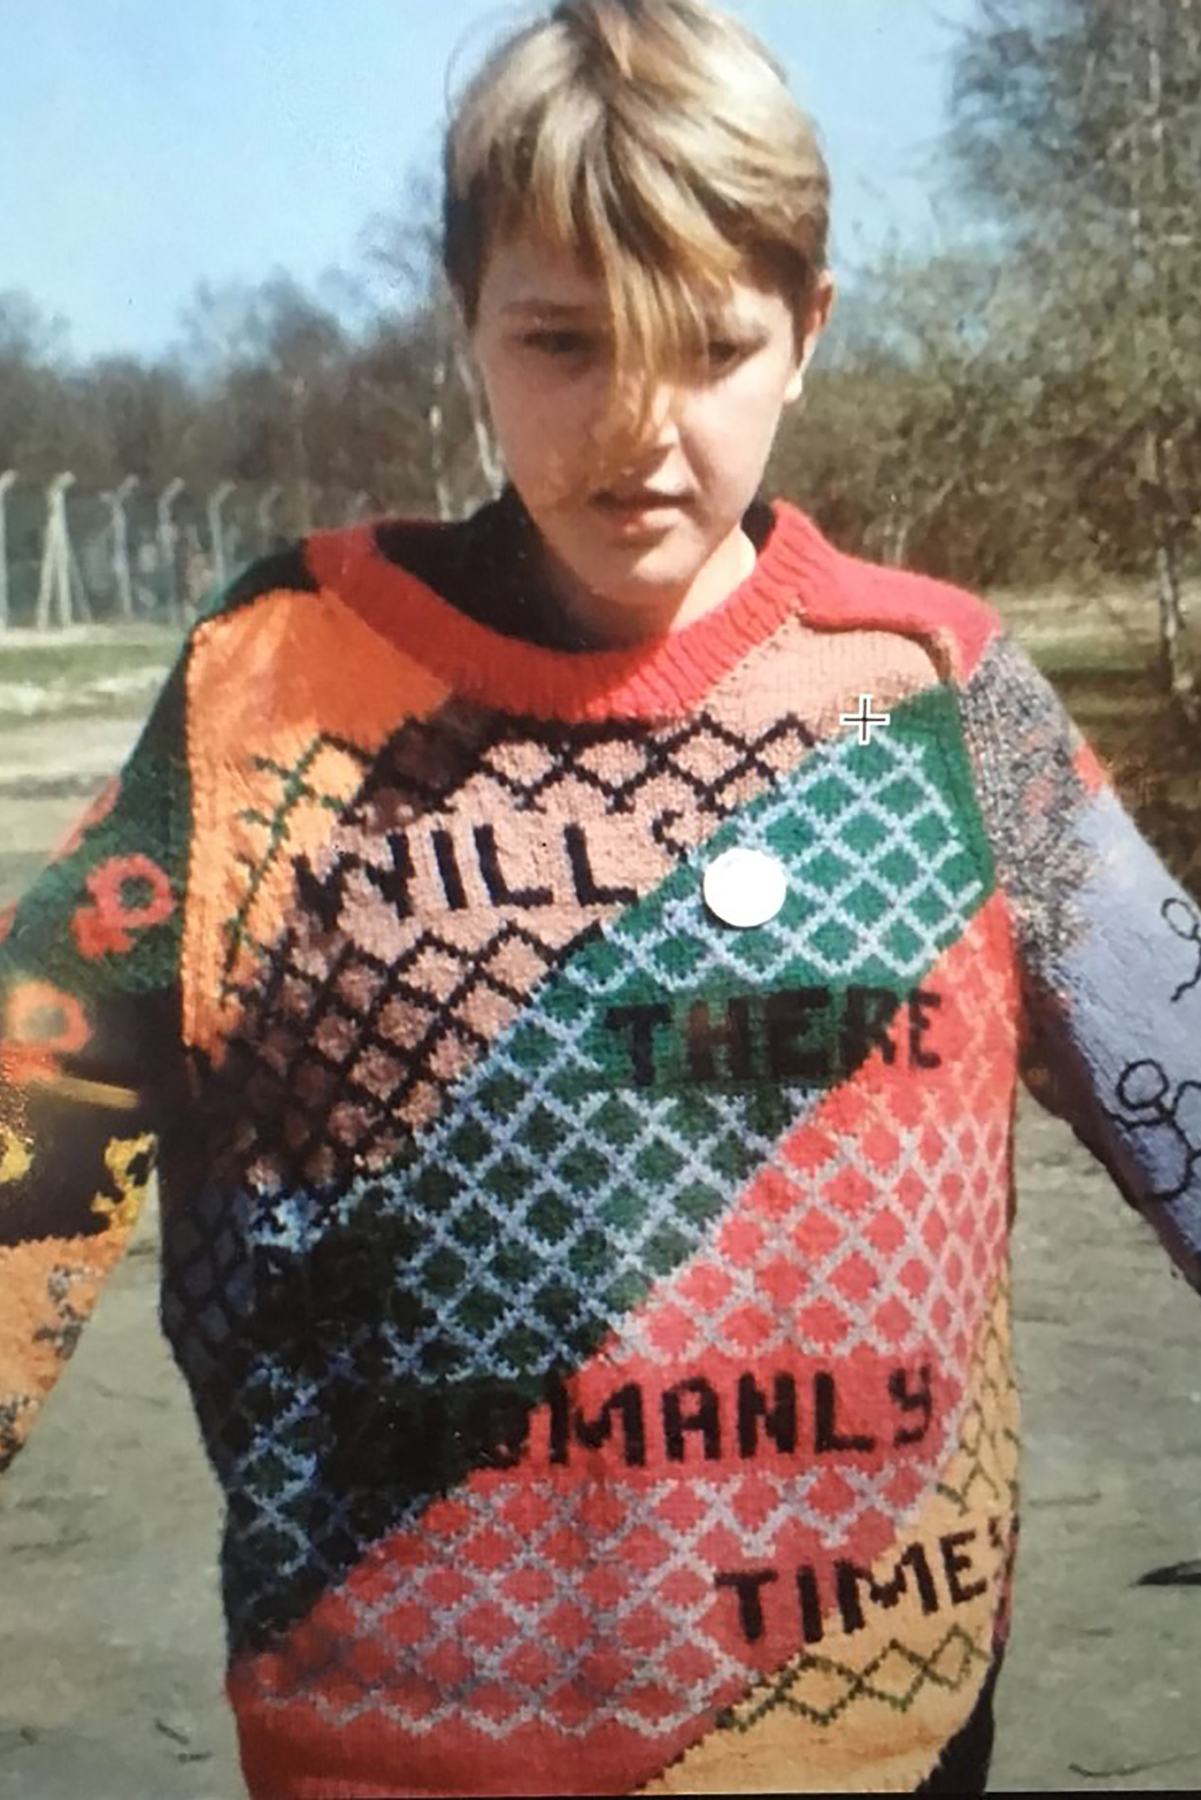 Knitwear made and designed by Juley Howard for Anne Gilholy, worn by her daughter Dina Gilholy at Greenham Common (c.1987). Courtesy Juley Howard